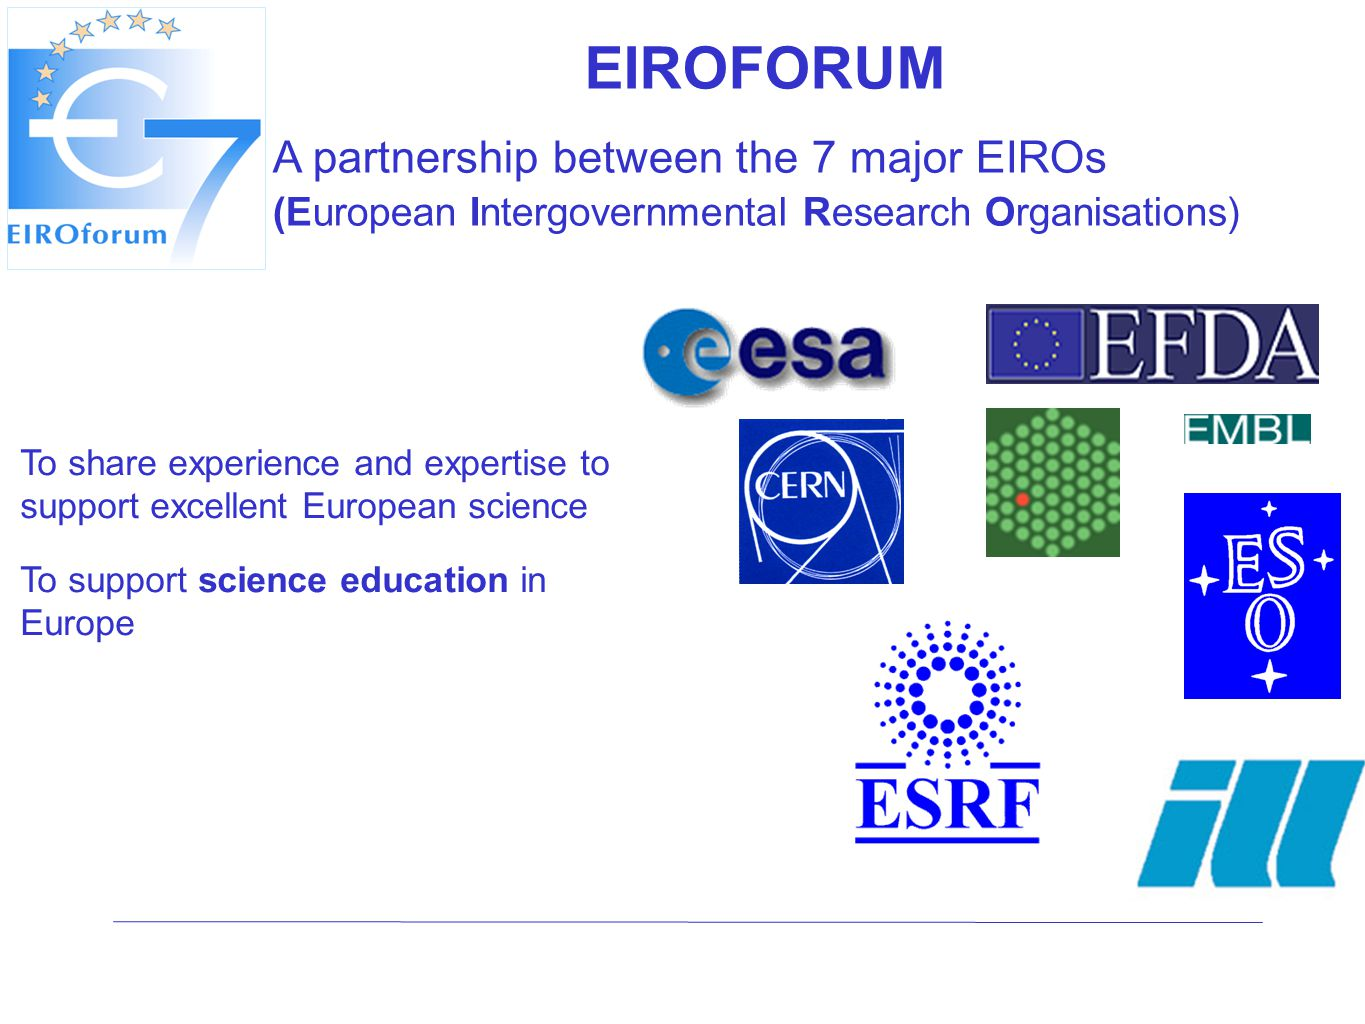 EIROFORUM A partnership between the 7 major EIROs (European Intergovernmental Research Organisations) To share experience and expertise to support excellent European science To support science education in Europe